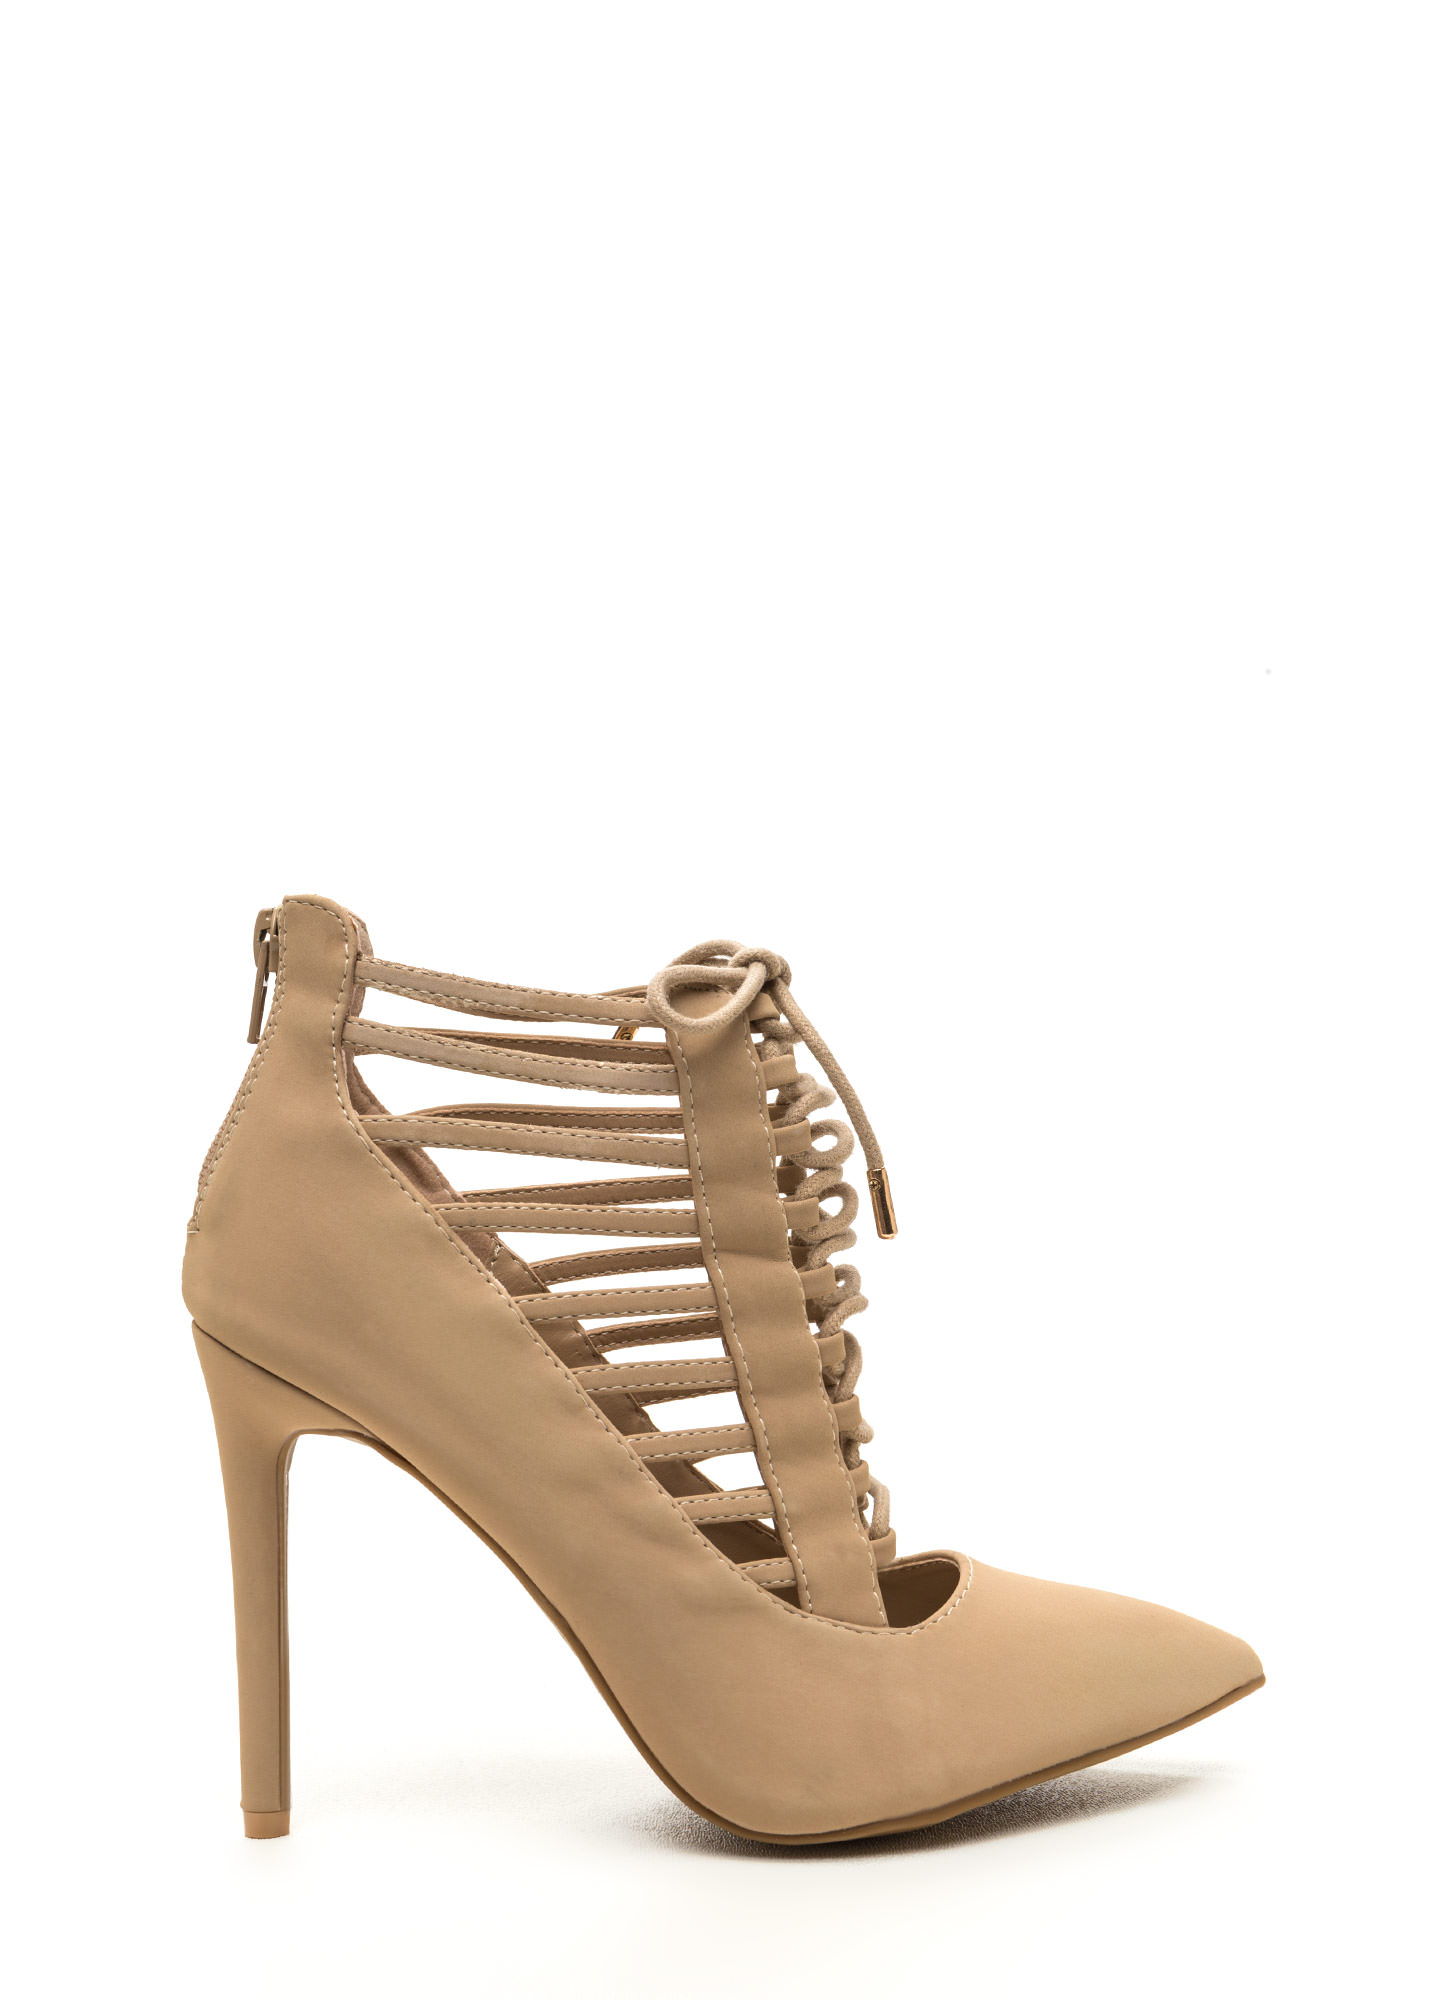 Special E-Vent Pointy Lace-Up Heels NUDE